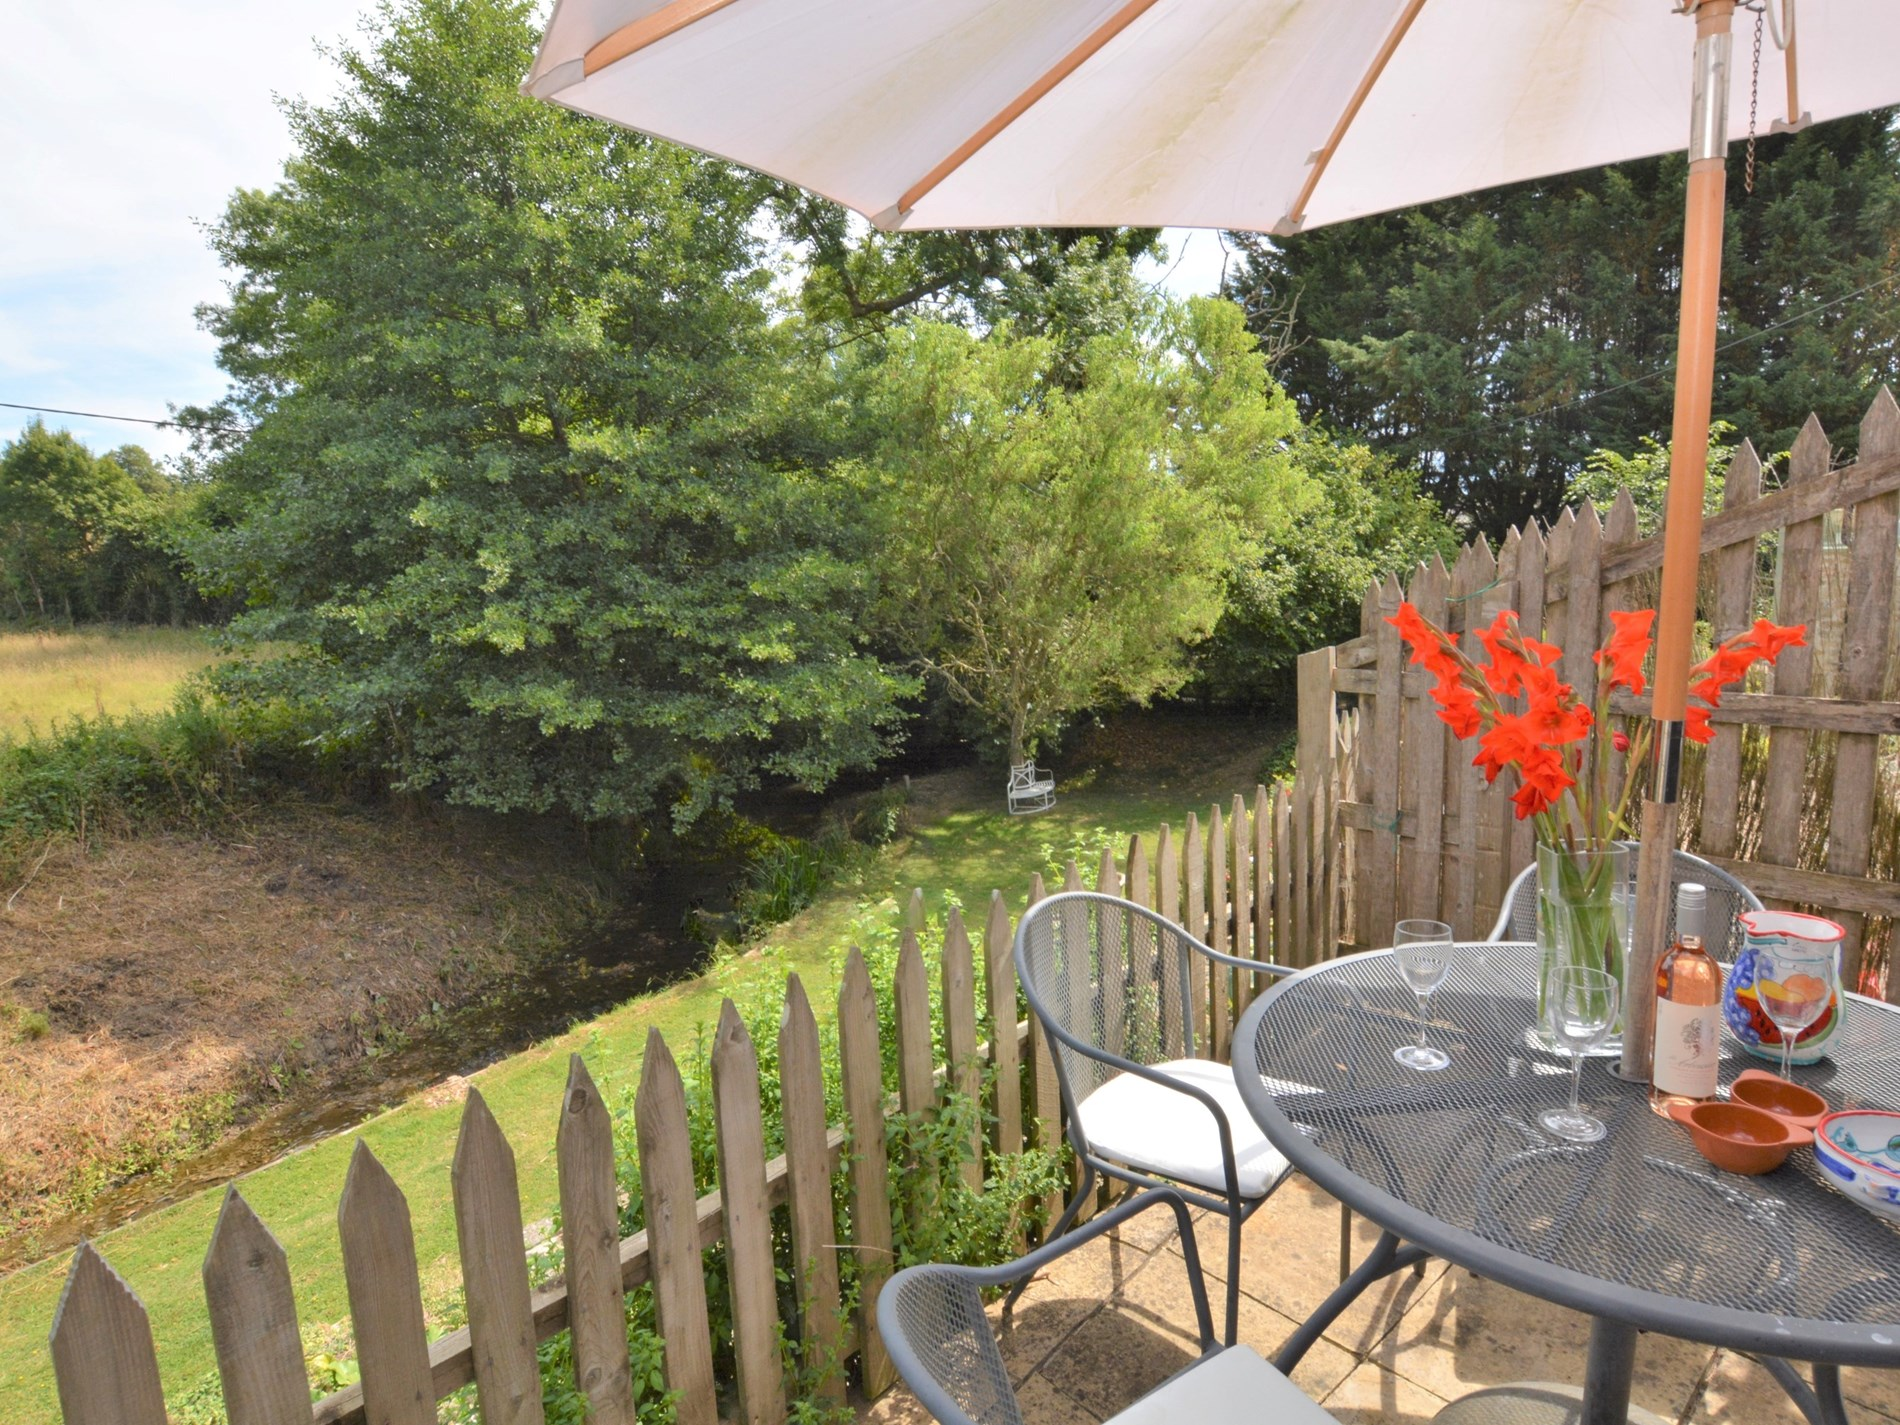 2 Bedroom Cottage in Sherborne, Dorset and Somerset